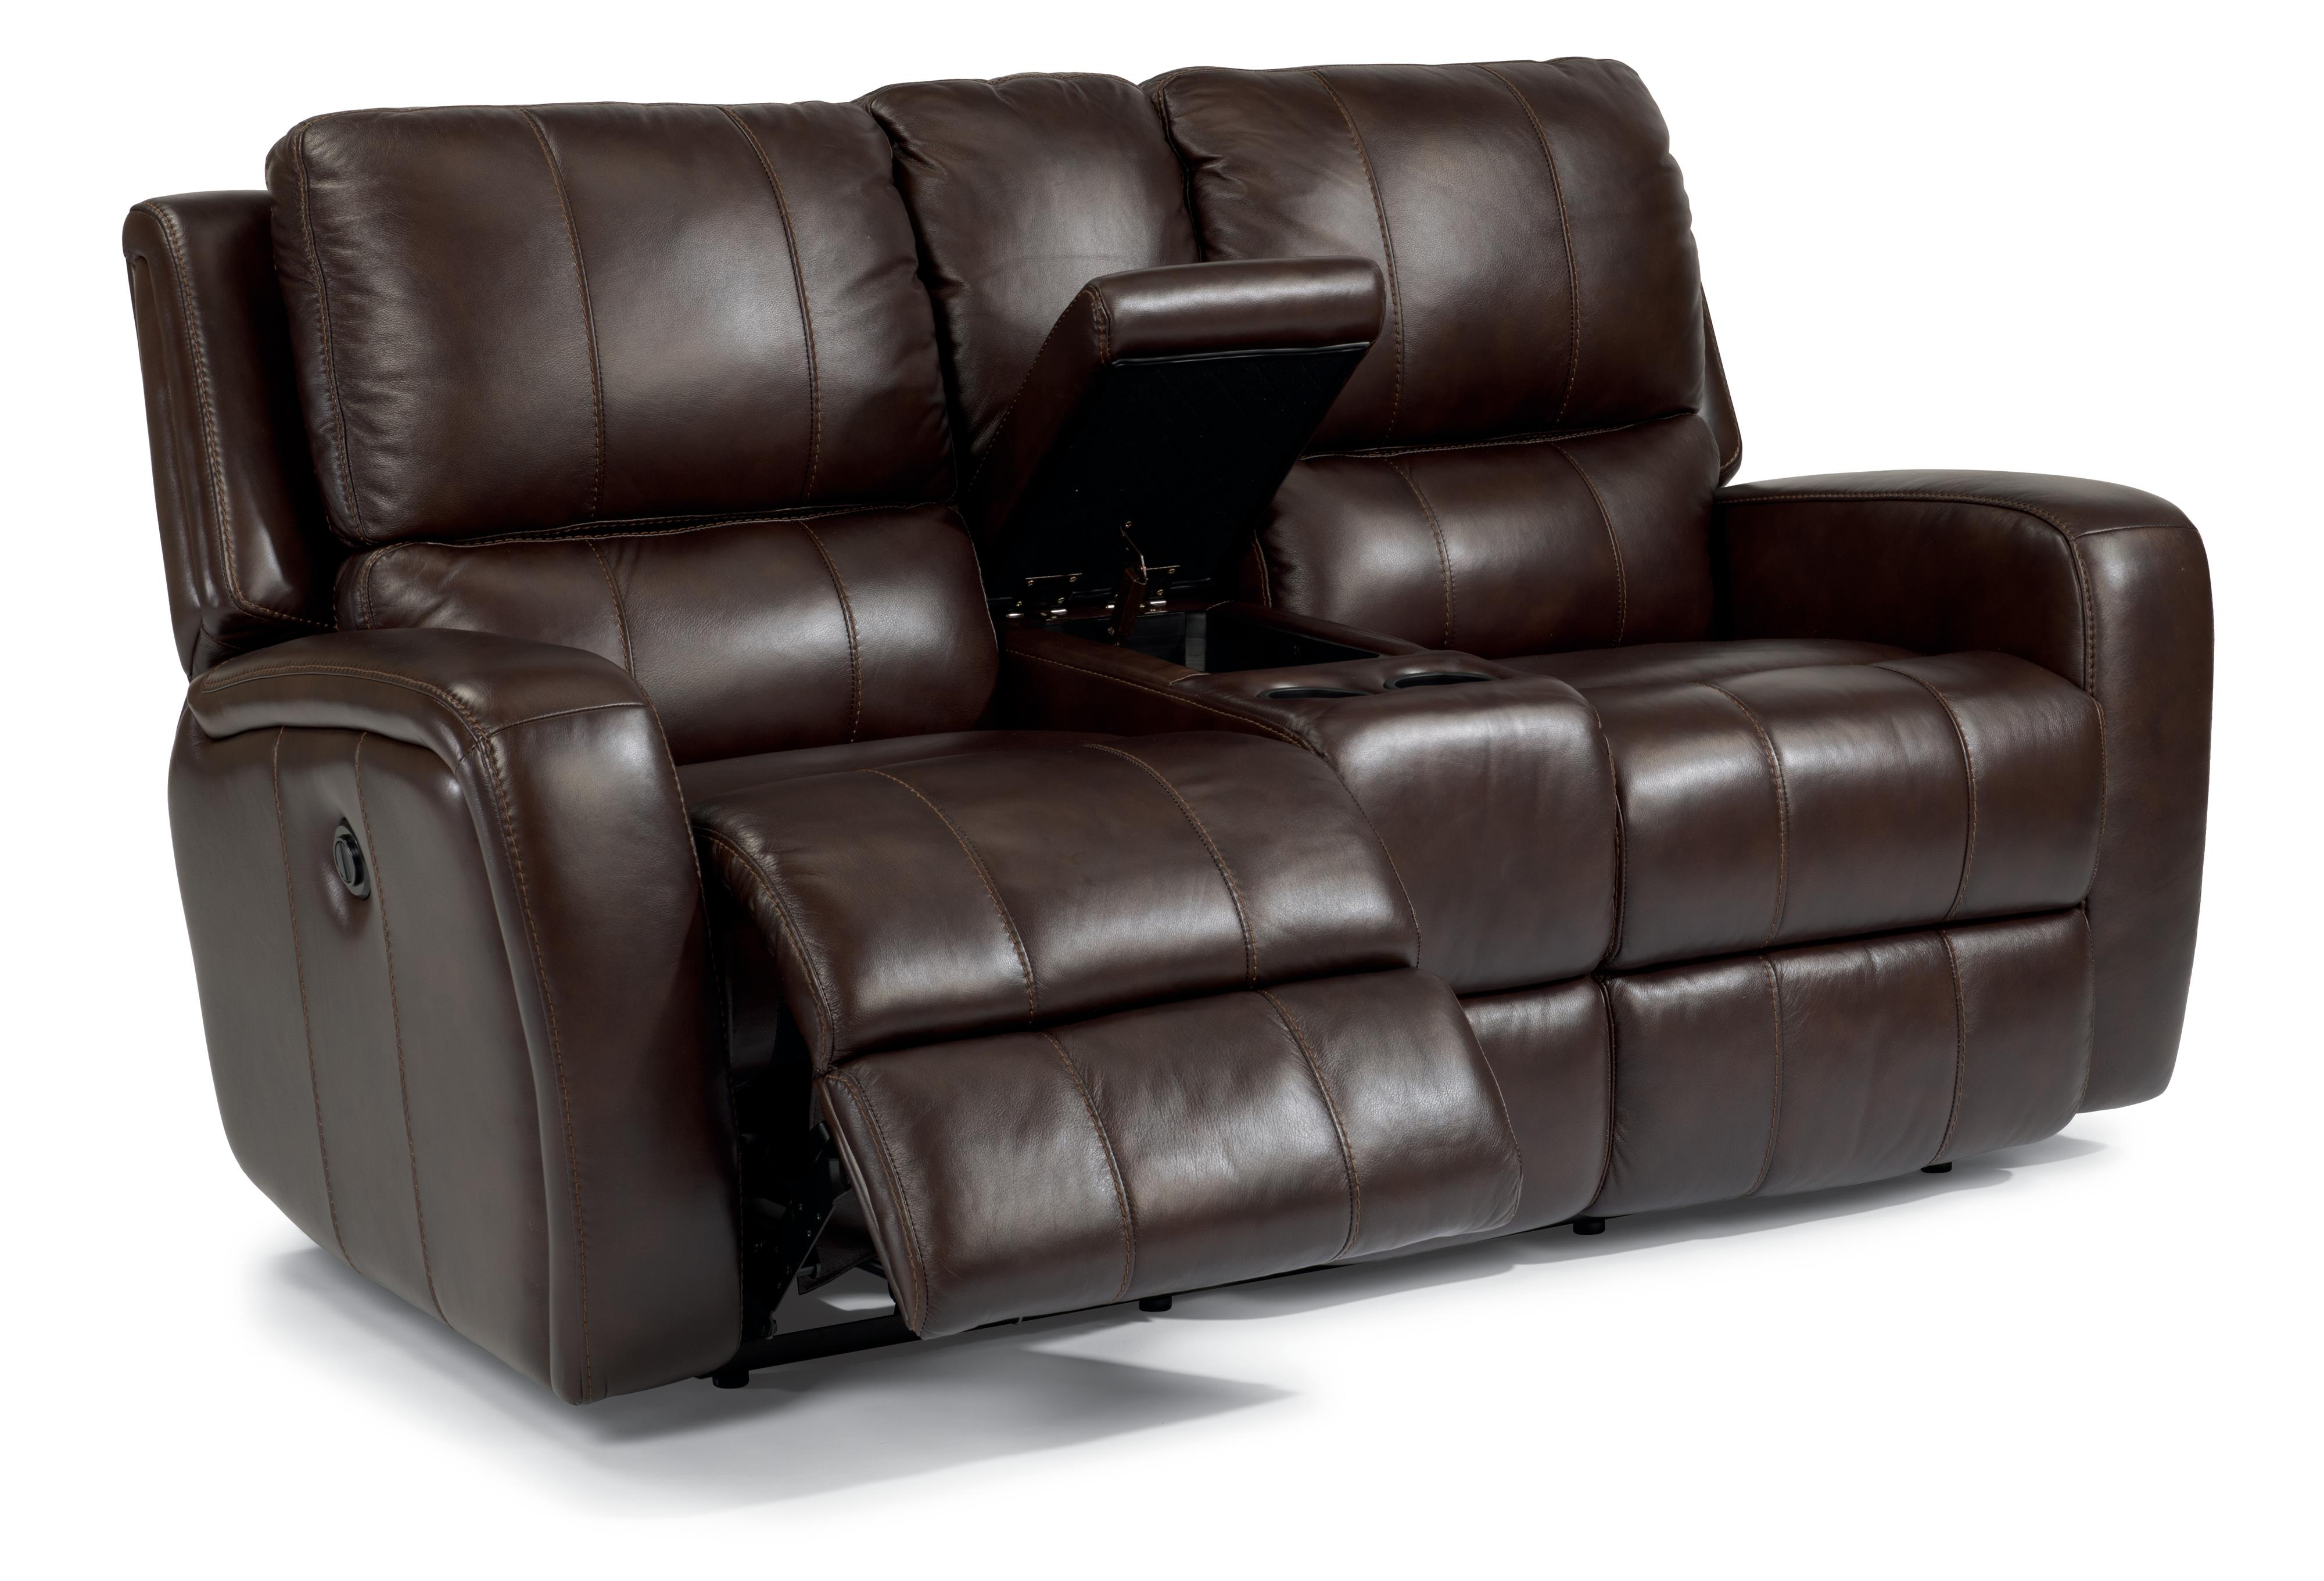 Flexsteel Latitudes-Hammond Power Reclining Love Seat with Console - Item Number: 1157-604P-555-72